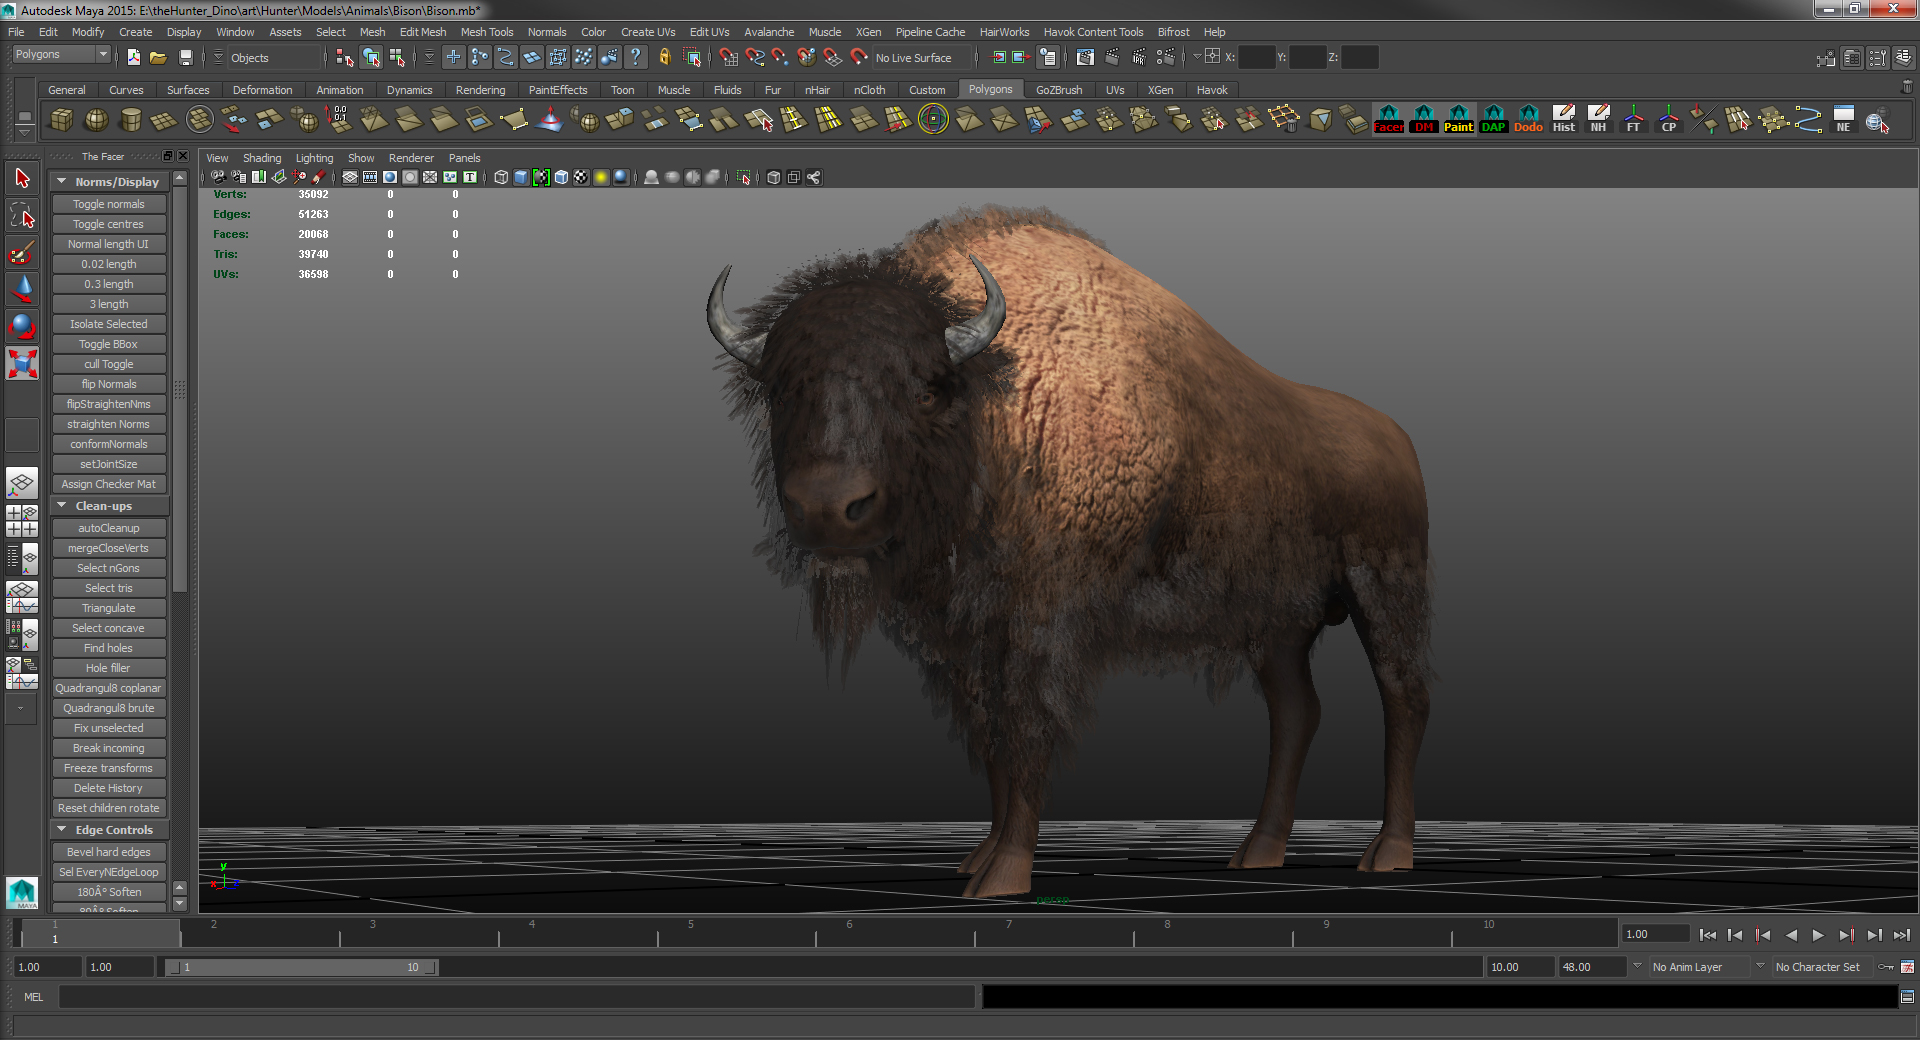 bison_screenshot_1